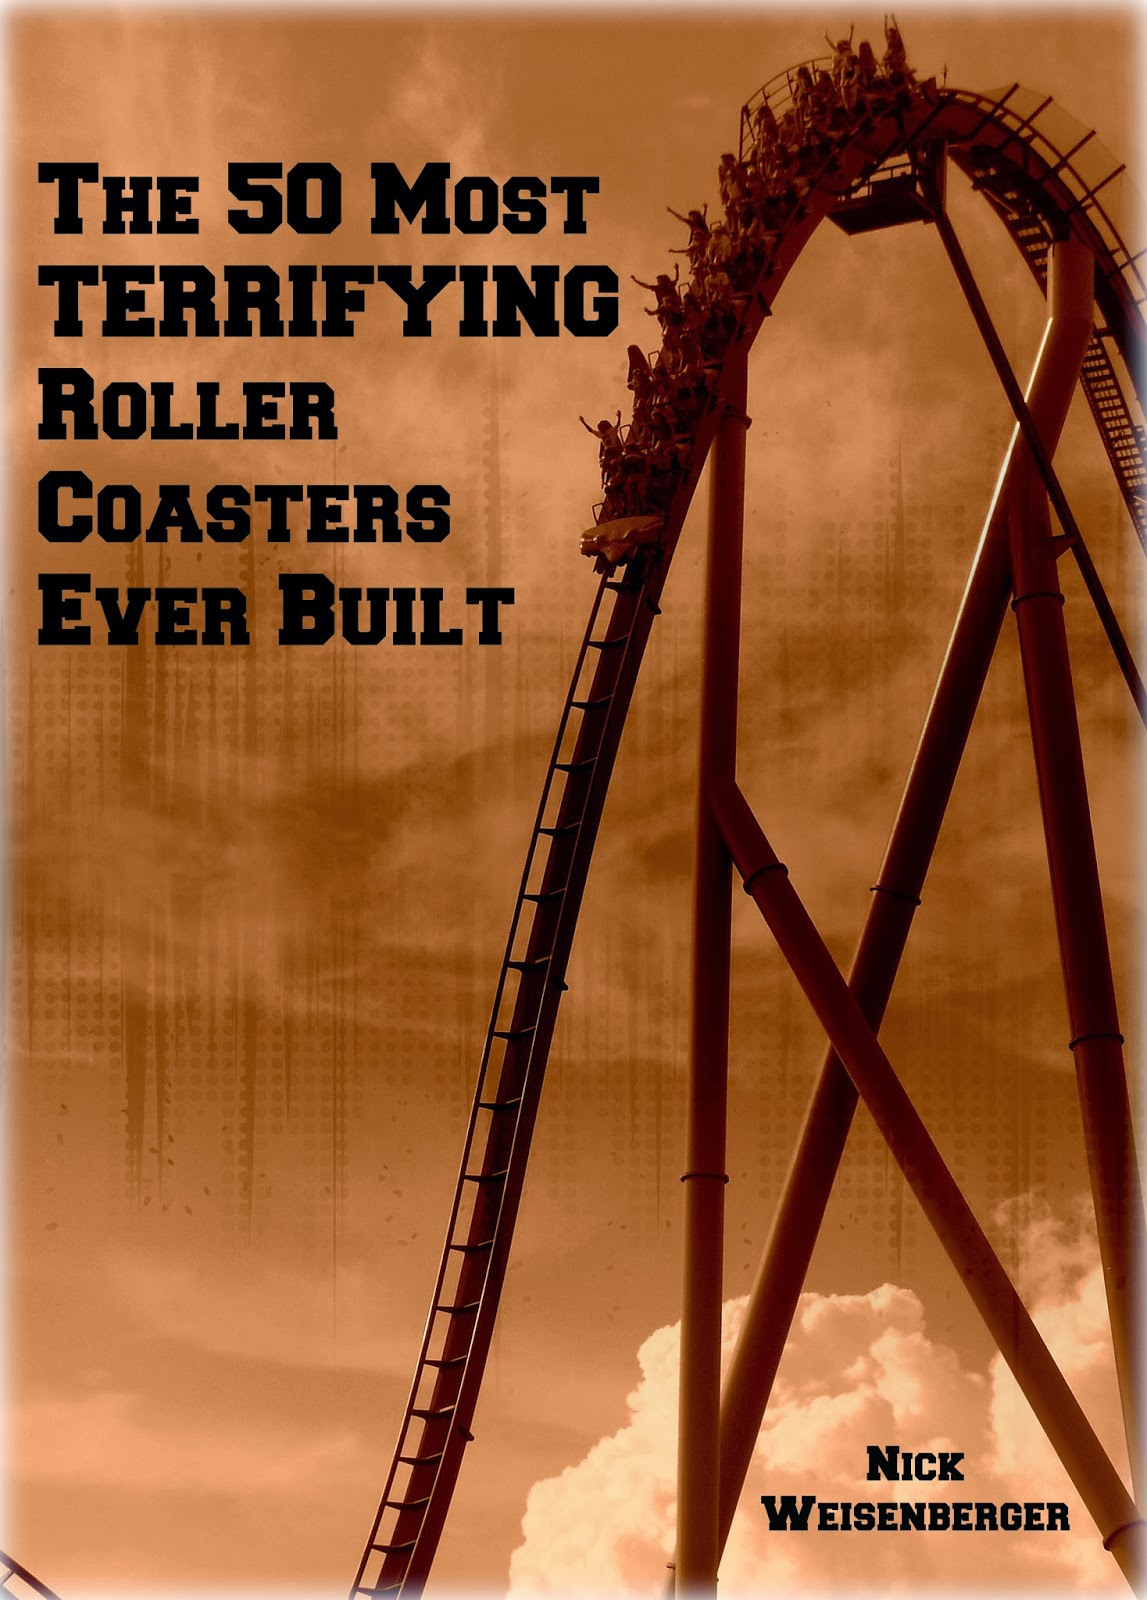 50 most terrifying roller coasters